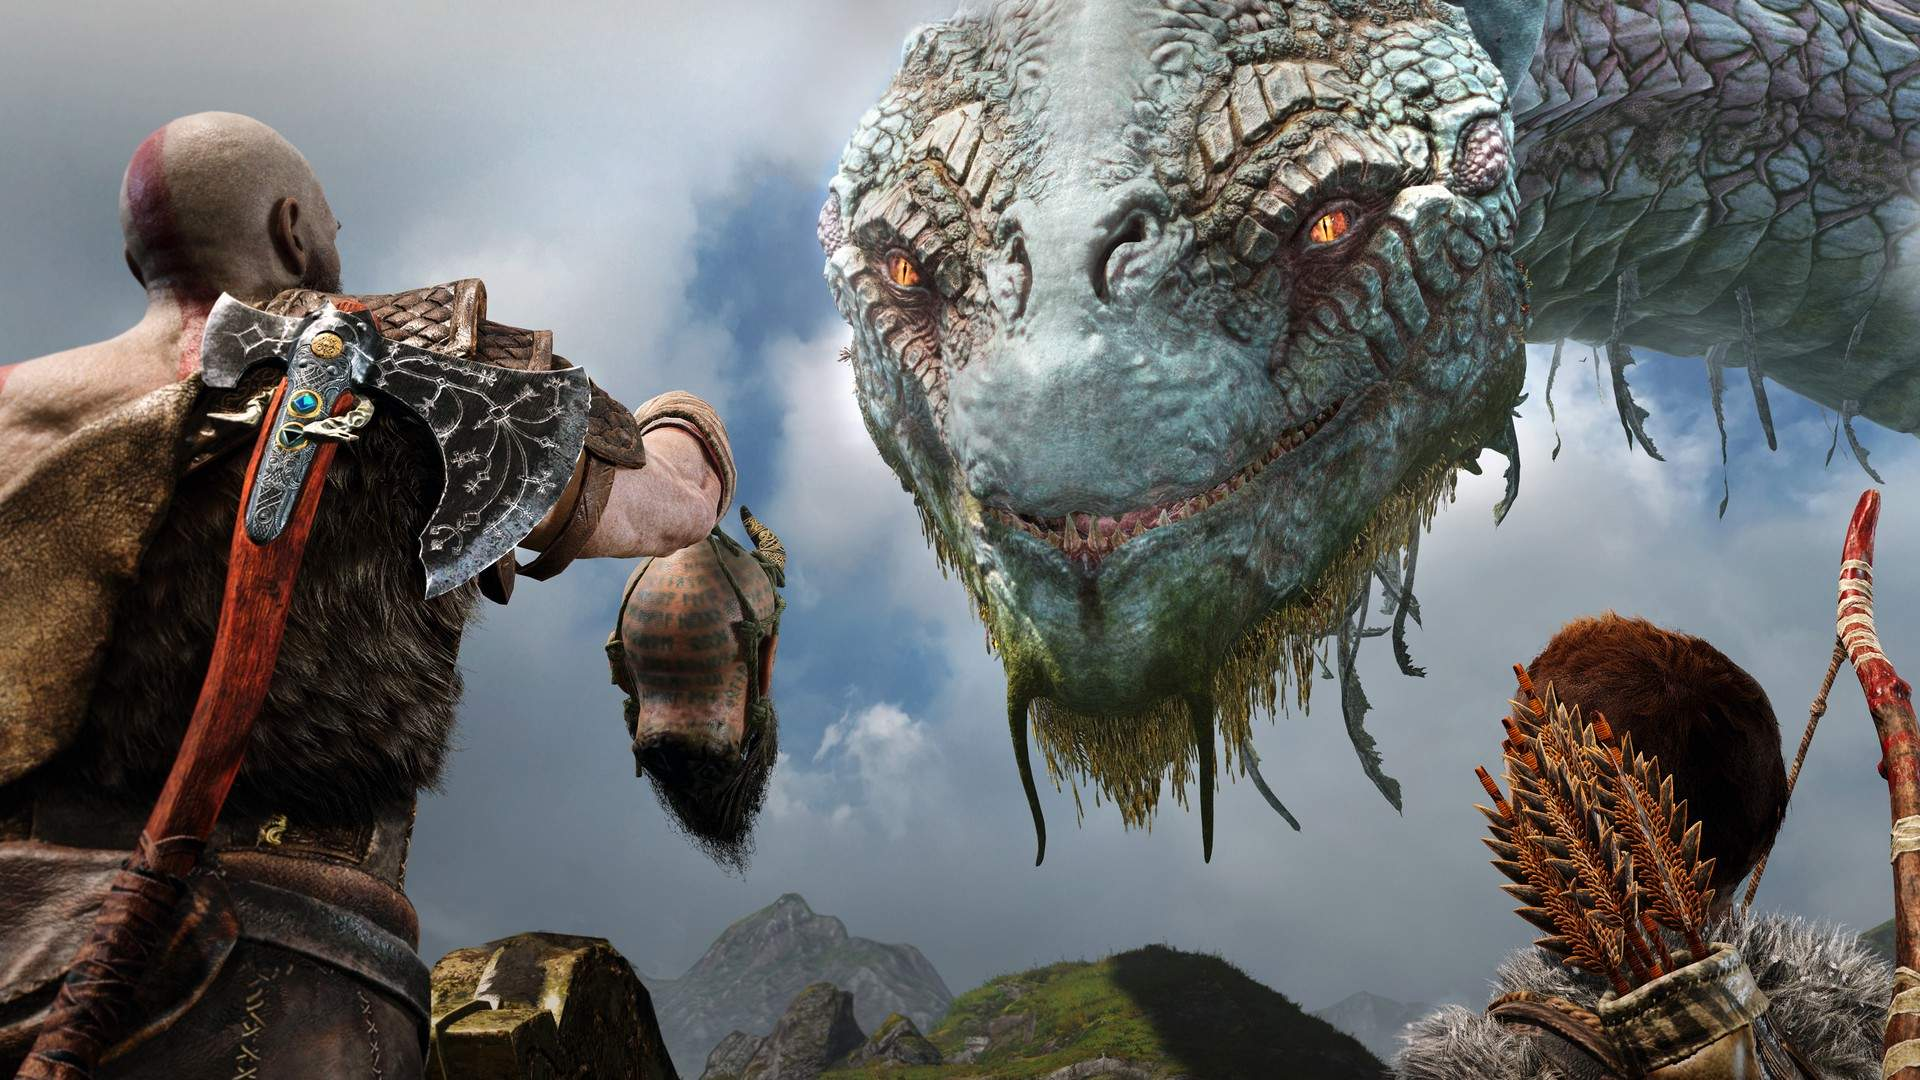 God of War 2018 Sony Santa Monica cohesive video game with little issues that destroy it wonky combat